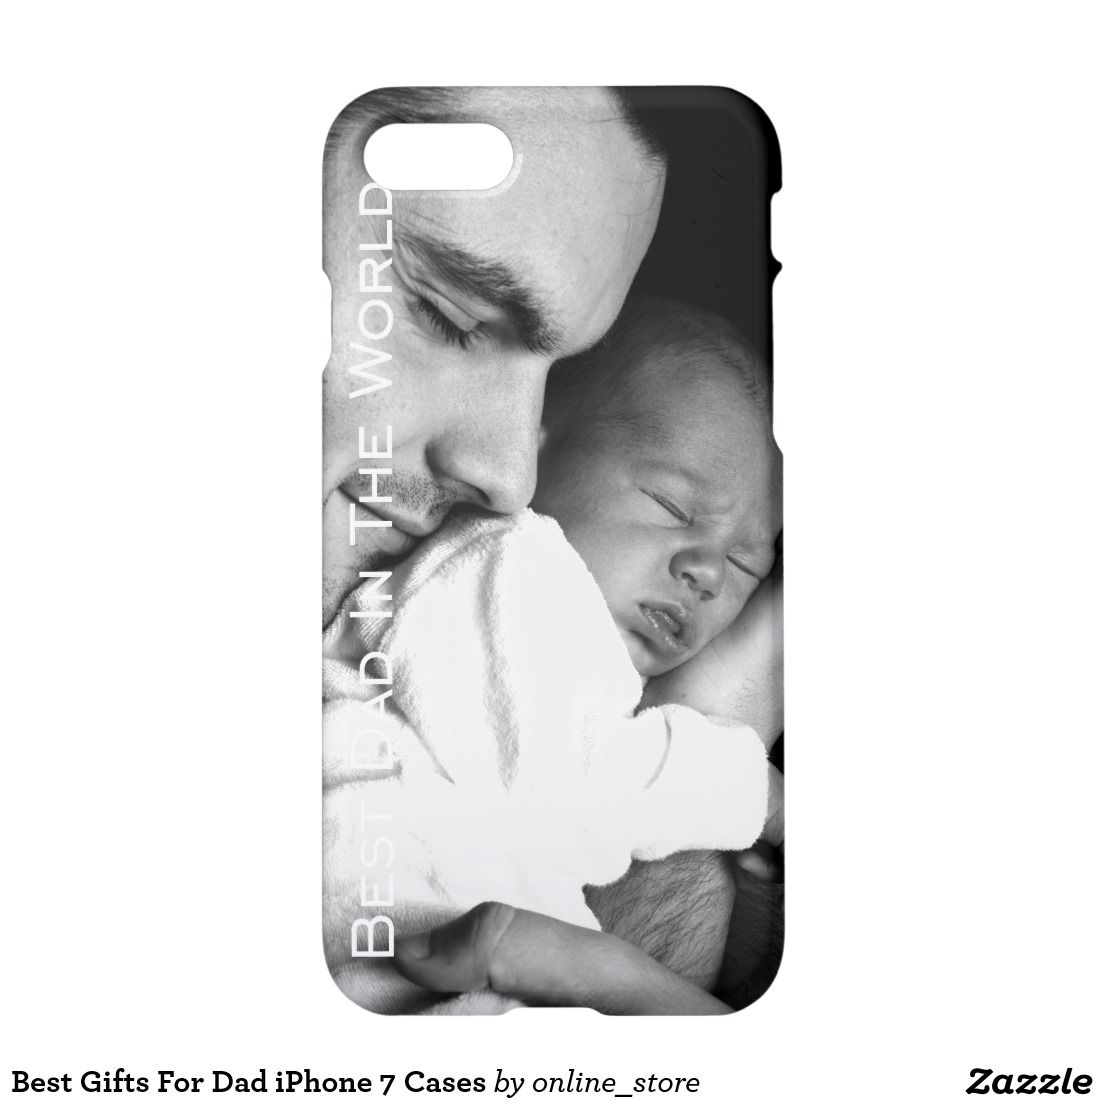 dad iphone 7 case